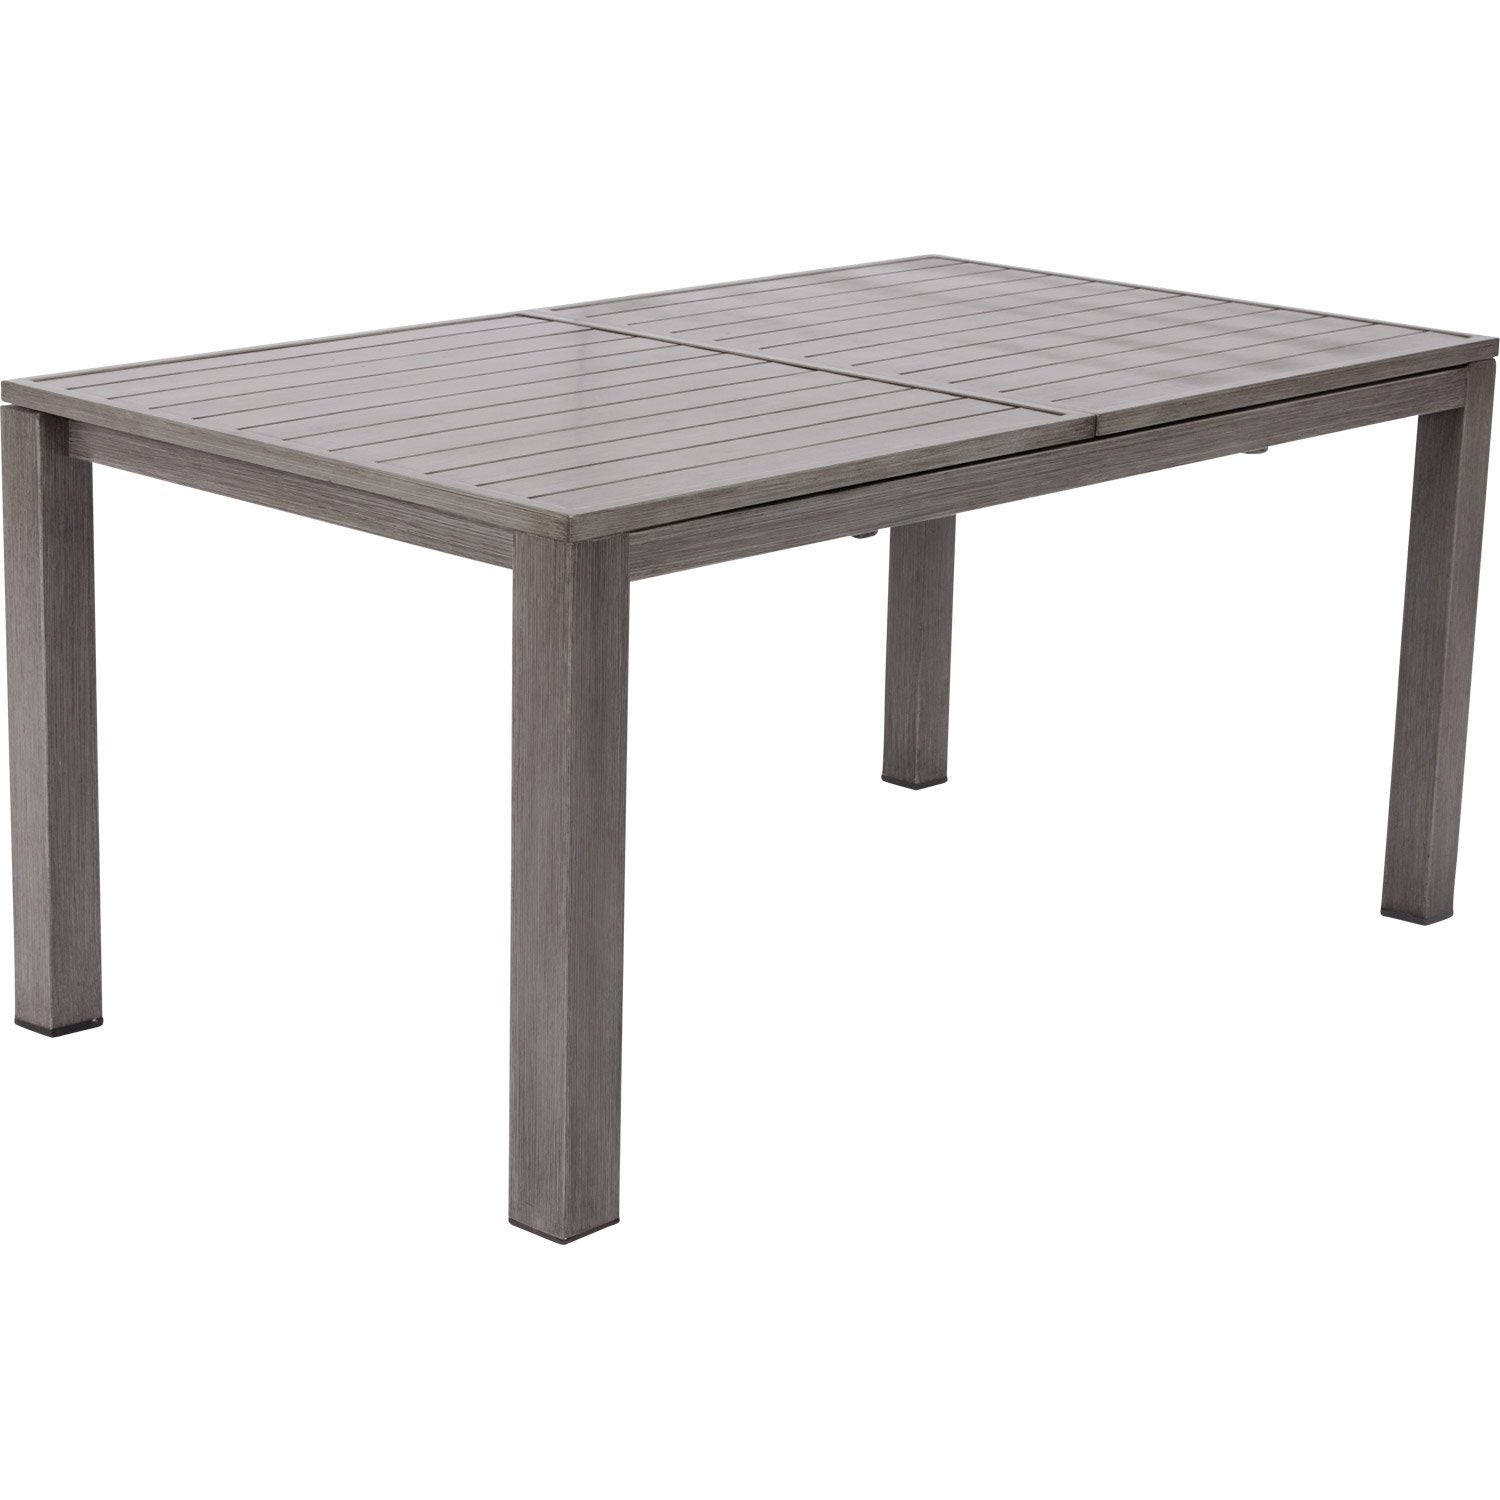 Table de jardin naterial antibes rectangulaire gris look bois 10 personnes leroy merlin for Decaper une table de jardin en bois